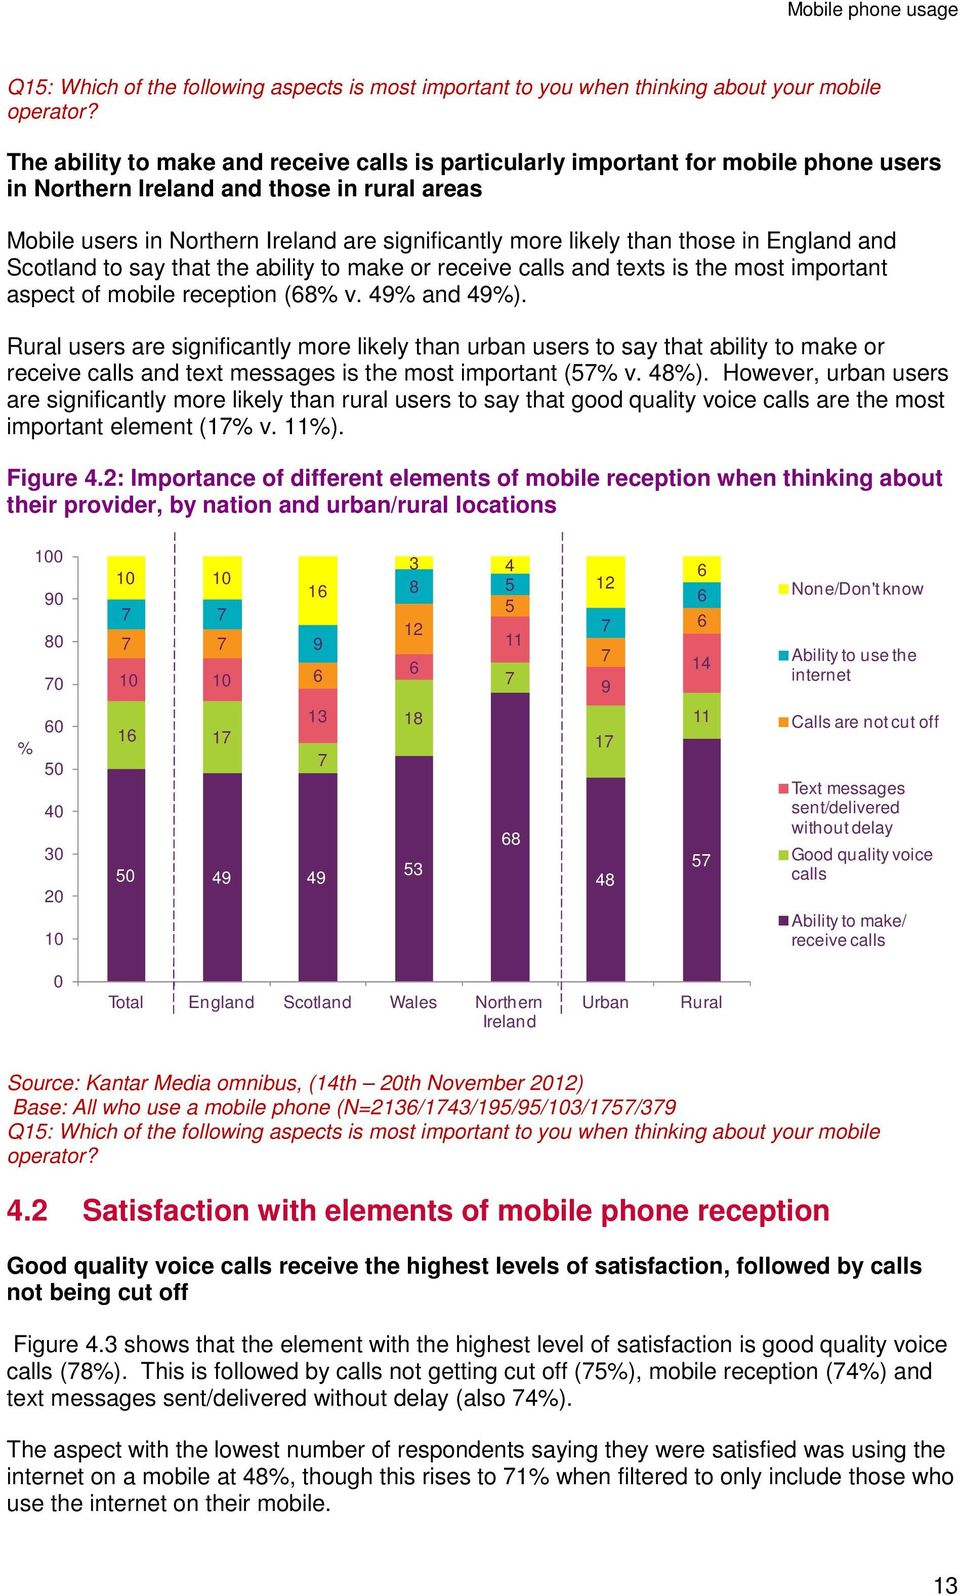 those in England and Scotland to say that the ability to make or receive calls and texts is the most important aspect of mobile reception (8% v. 4% and 4%).